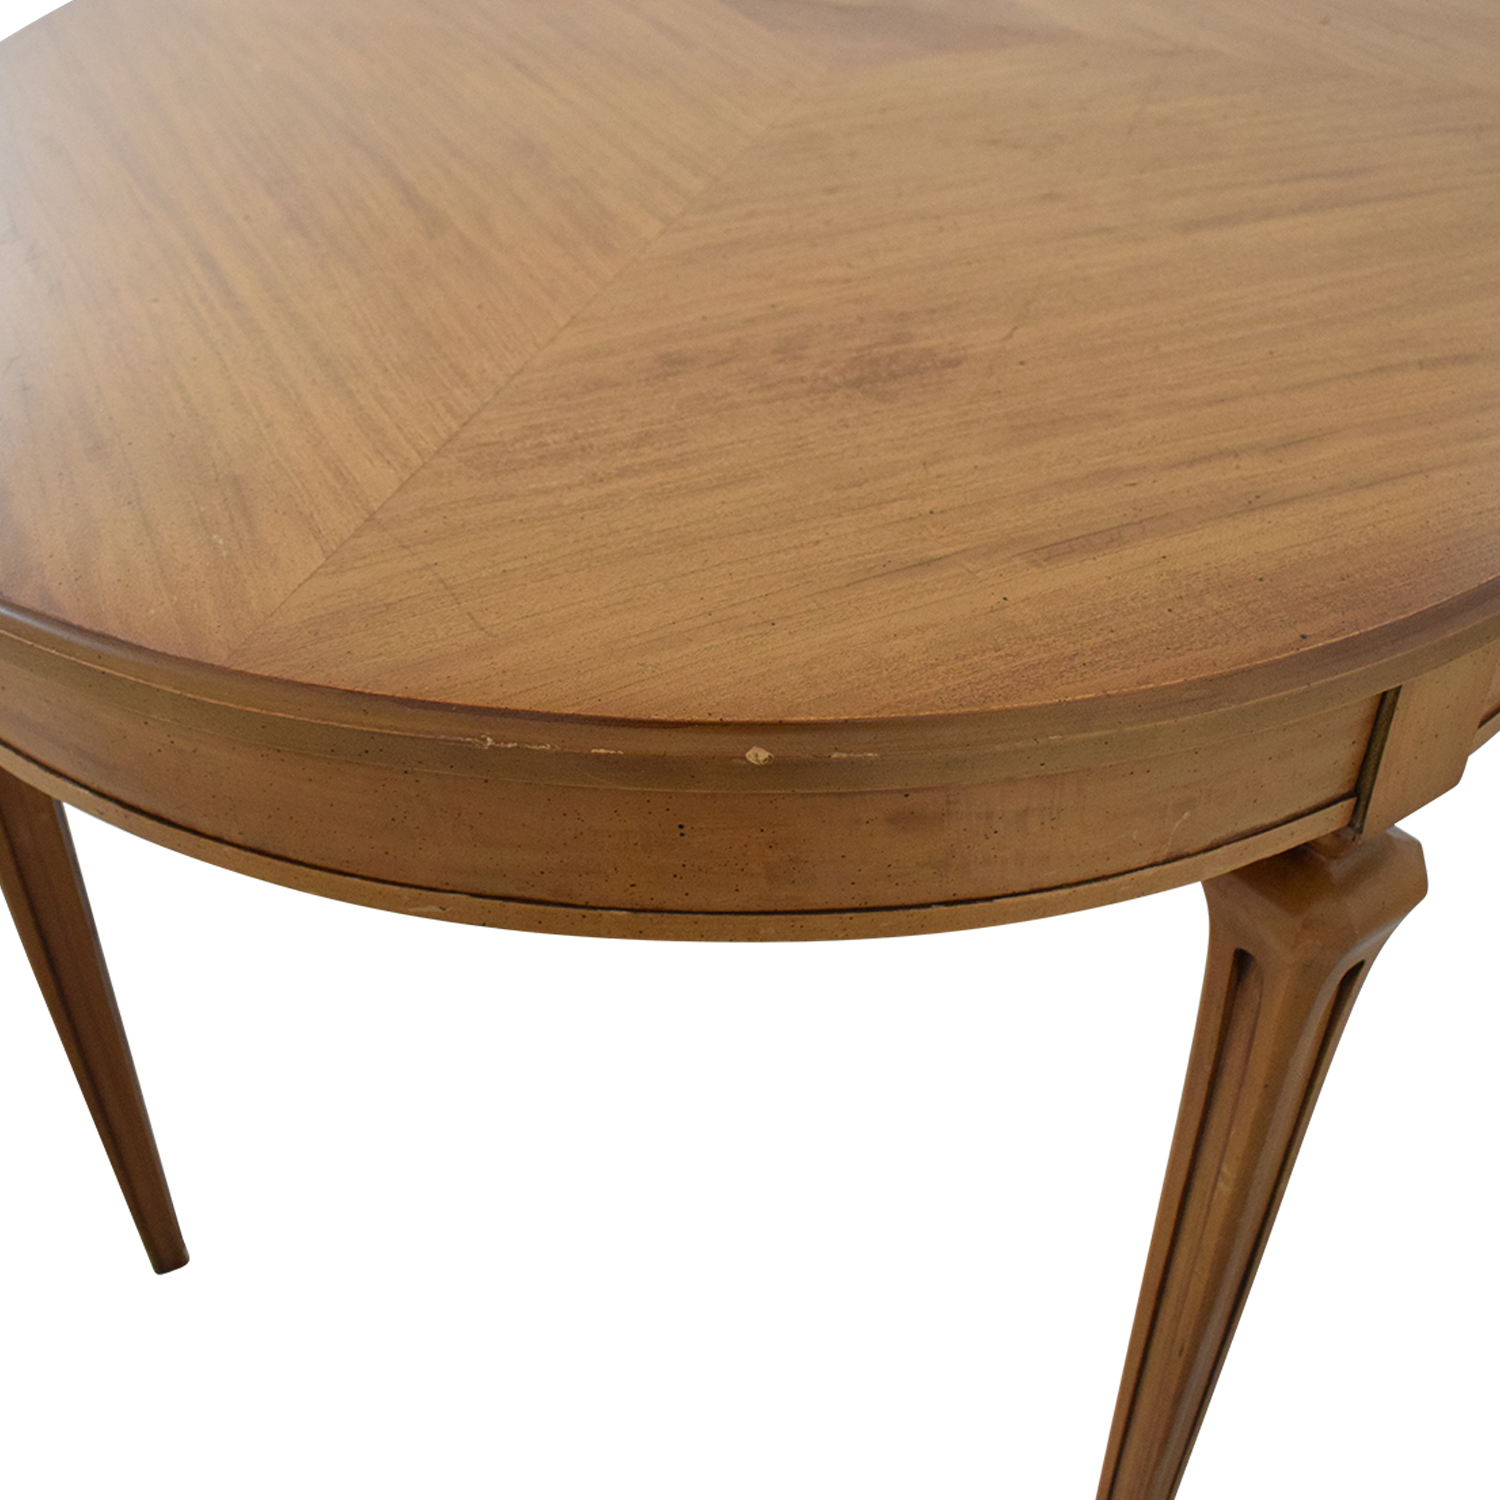 Extendable Oval Dining Table used